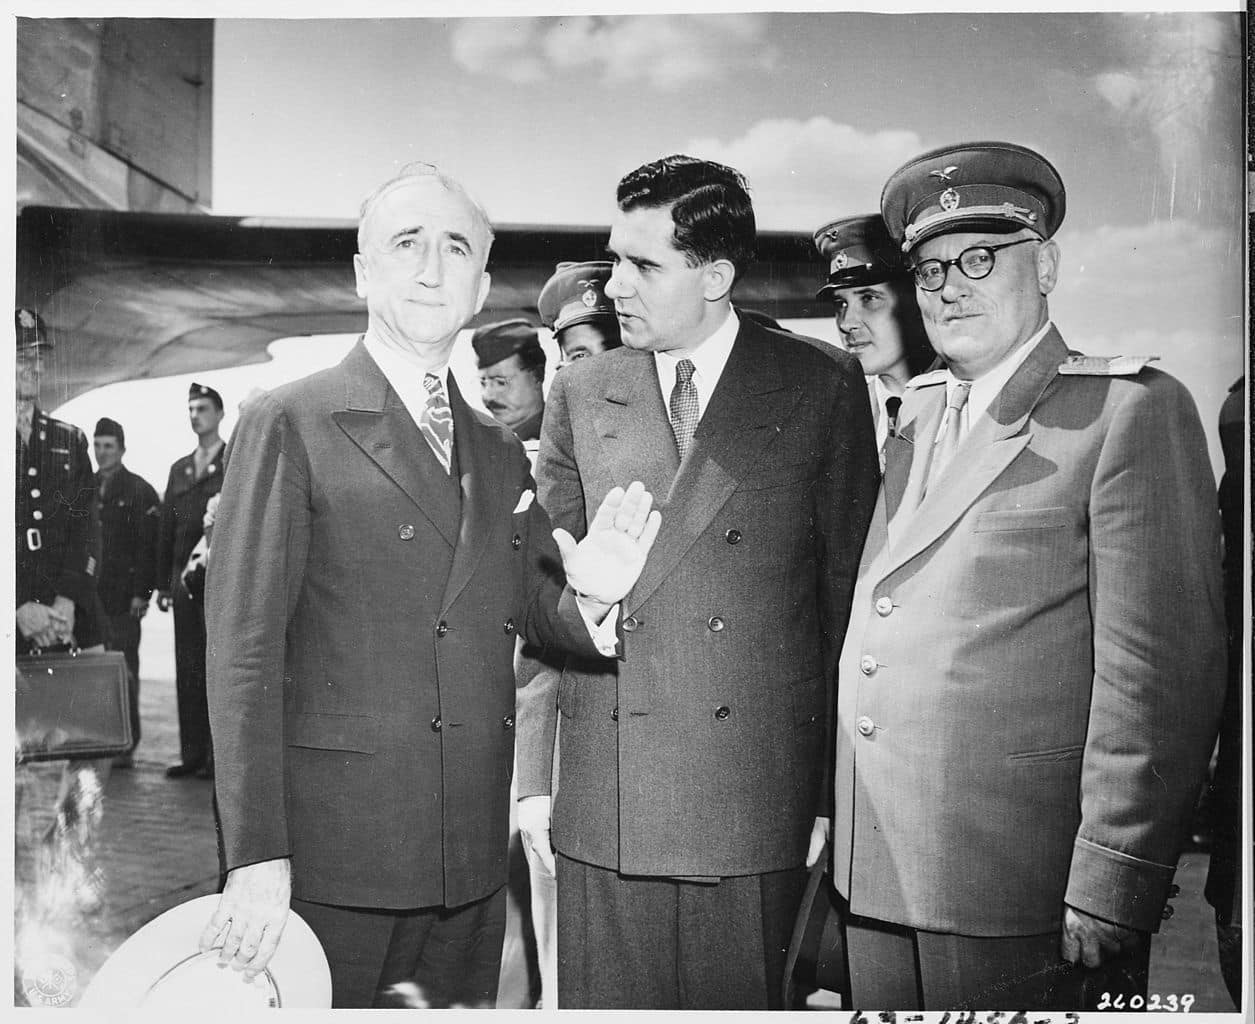 The Potsdam Conference - July 27th 1945 - Secretary of State James Byrnes (left) - seen here greeting Soviet Ambassador to the United States, Andrei Gromyko (center) - would be an essential part of Truman's negotiating team//Image: US National Archives and Records